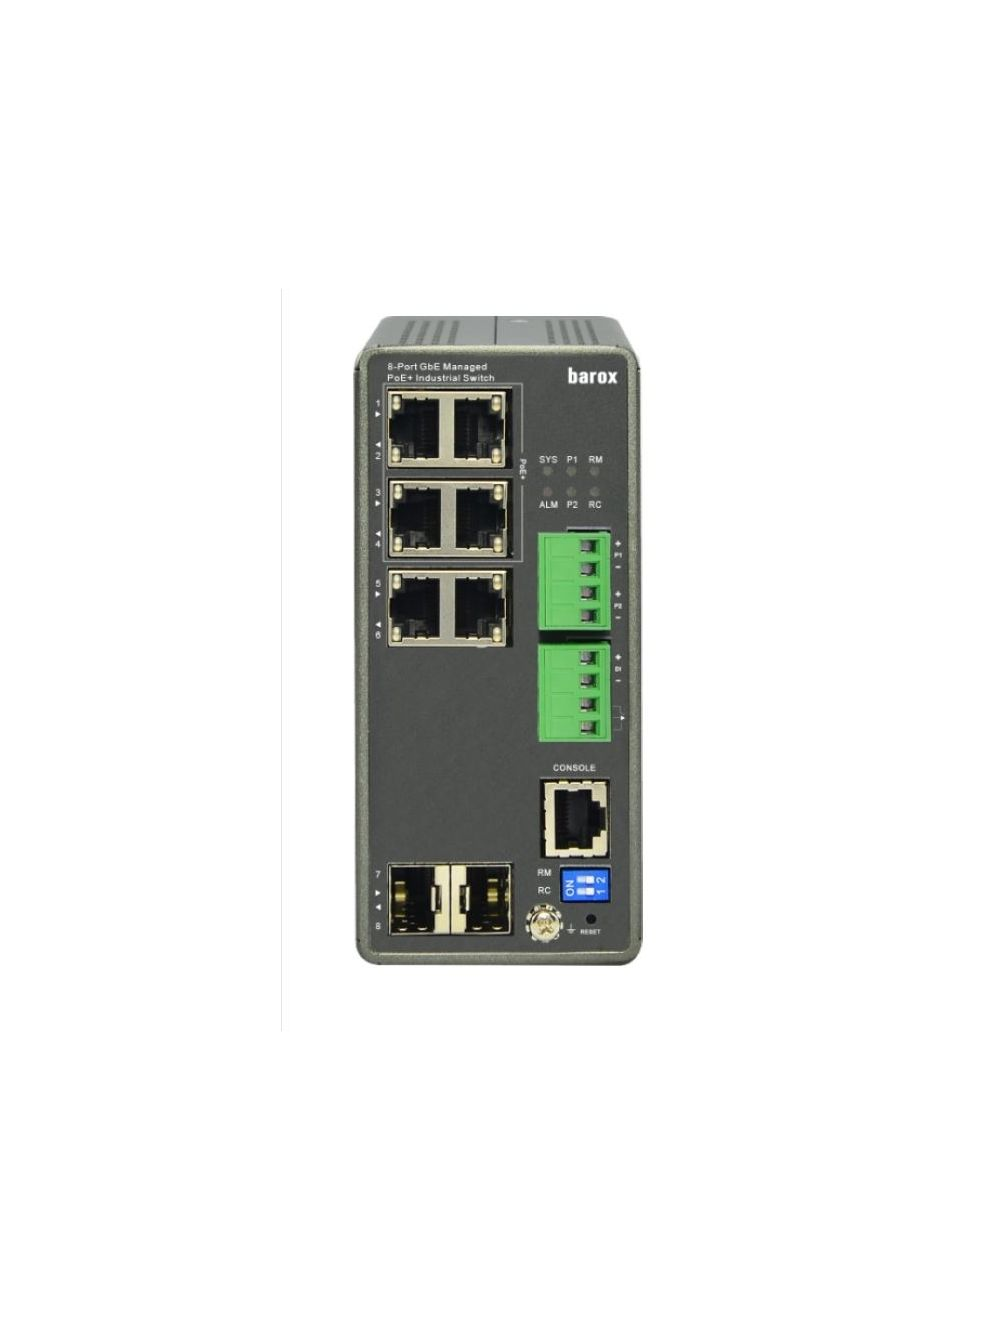 barox RY-LPIGE-602GBTME Ethernet Switch DIN-RAIL